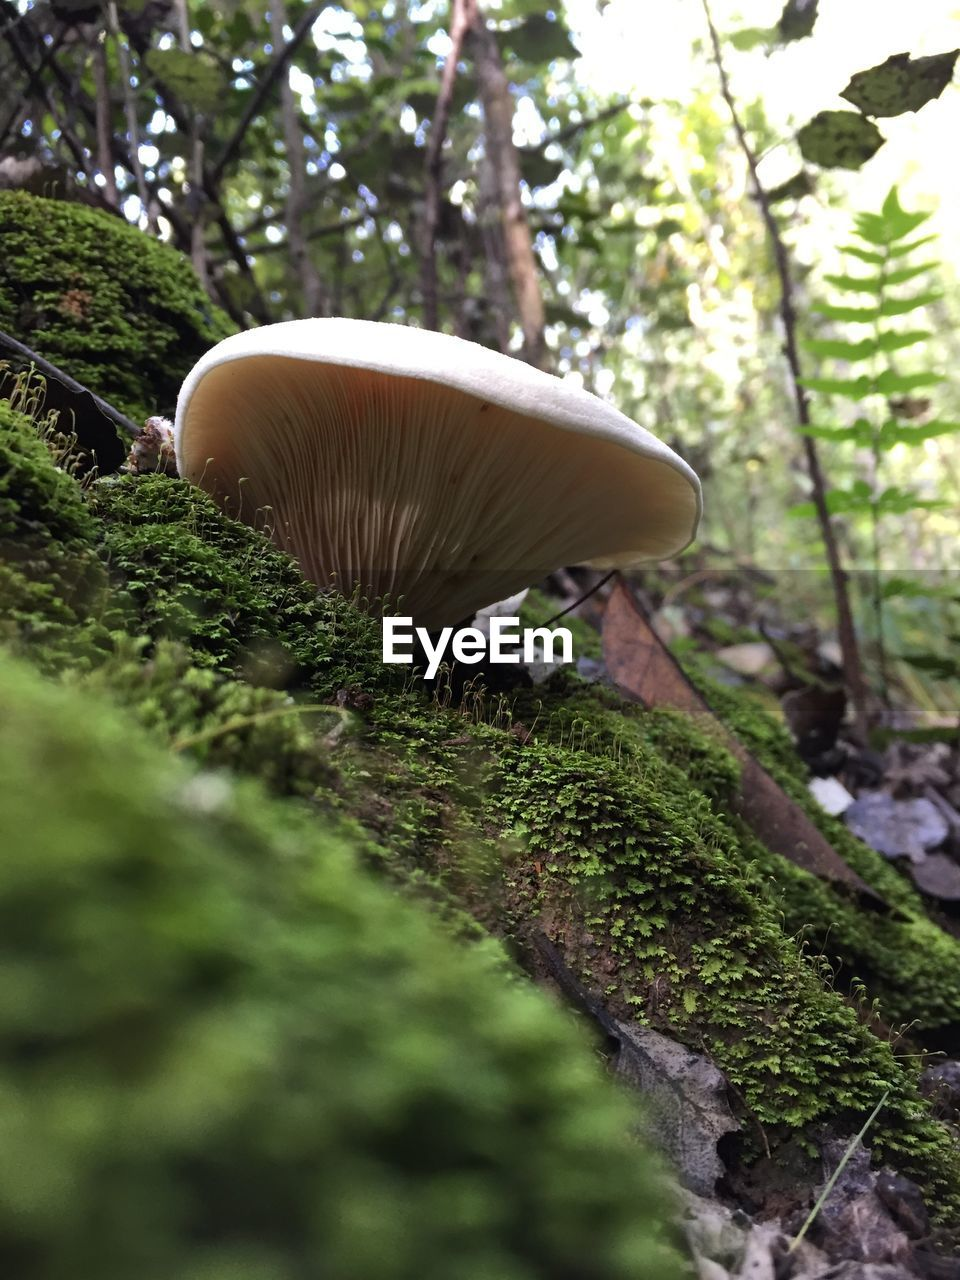 plant, mushroom, tree, fungus, growth, toadstool, vegetable, nature, no people, day, selective focus, land, food, close-up, edible mushroom, forest, green color, beauty in nature, moss, field, outdoors, surface level